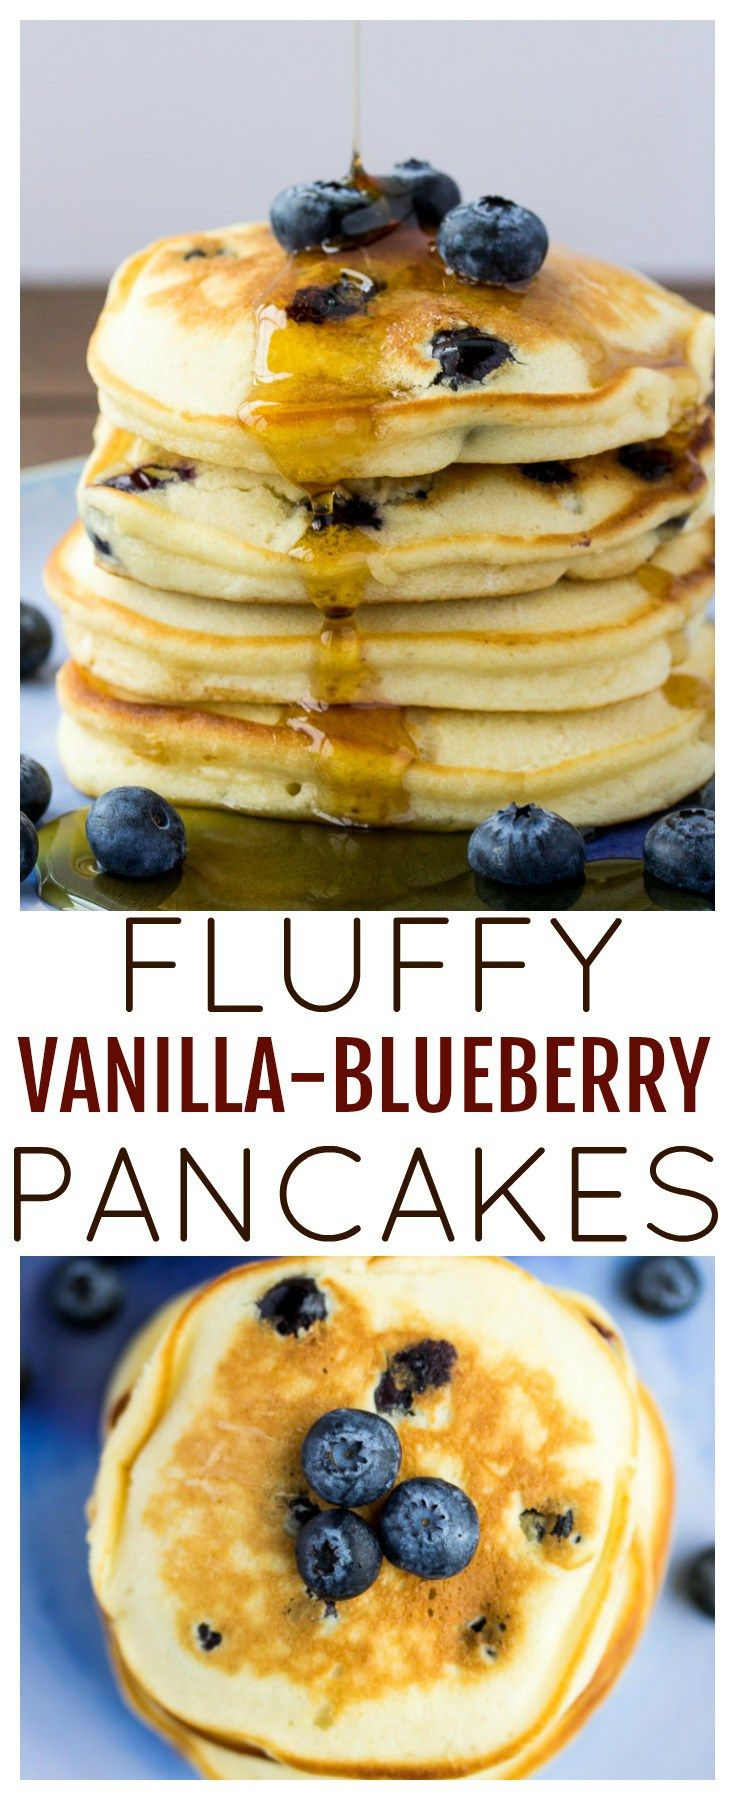 A Fluffy Blueberry Pancakes recipe that is the perfect easy breakfast recipe! These are also great for brunch! | brunch recipe | #dlbrecipes #pancakesrecipe #blueberrypancakes #fluffypancakes #breakfast #breakfastrecipe